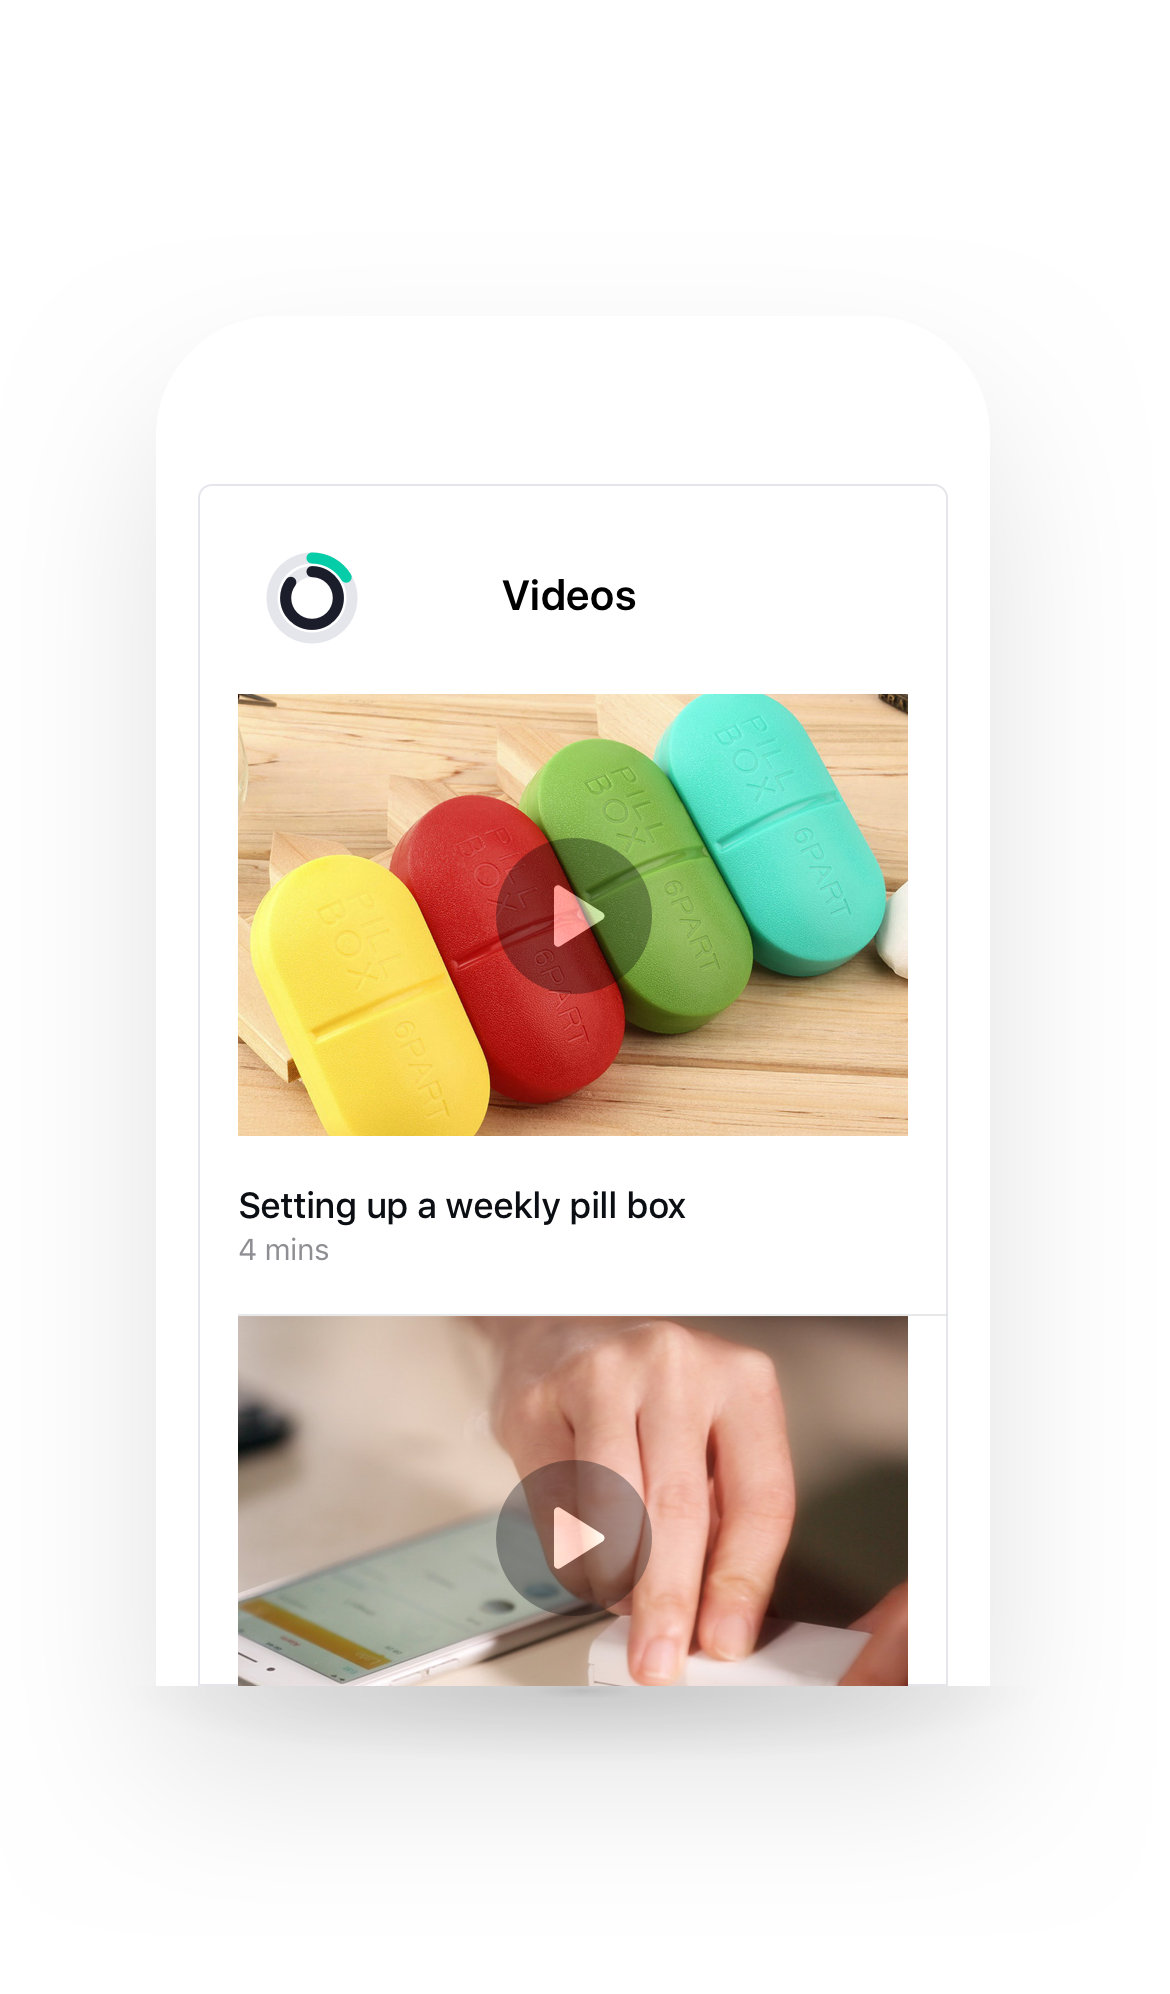 What great health looks like - Physicians contact patients using the method of their choosing, and can share video stories to teach patients the importance of medication adherence.